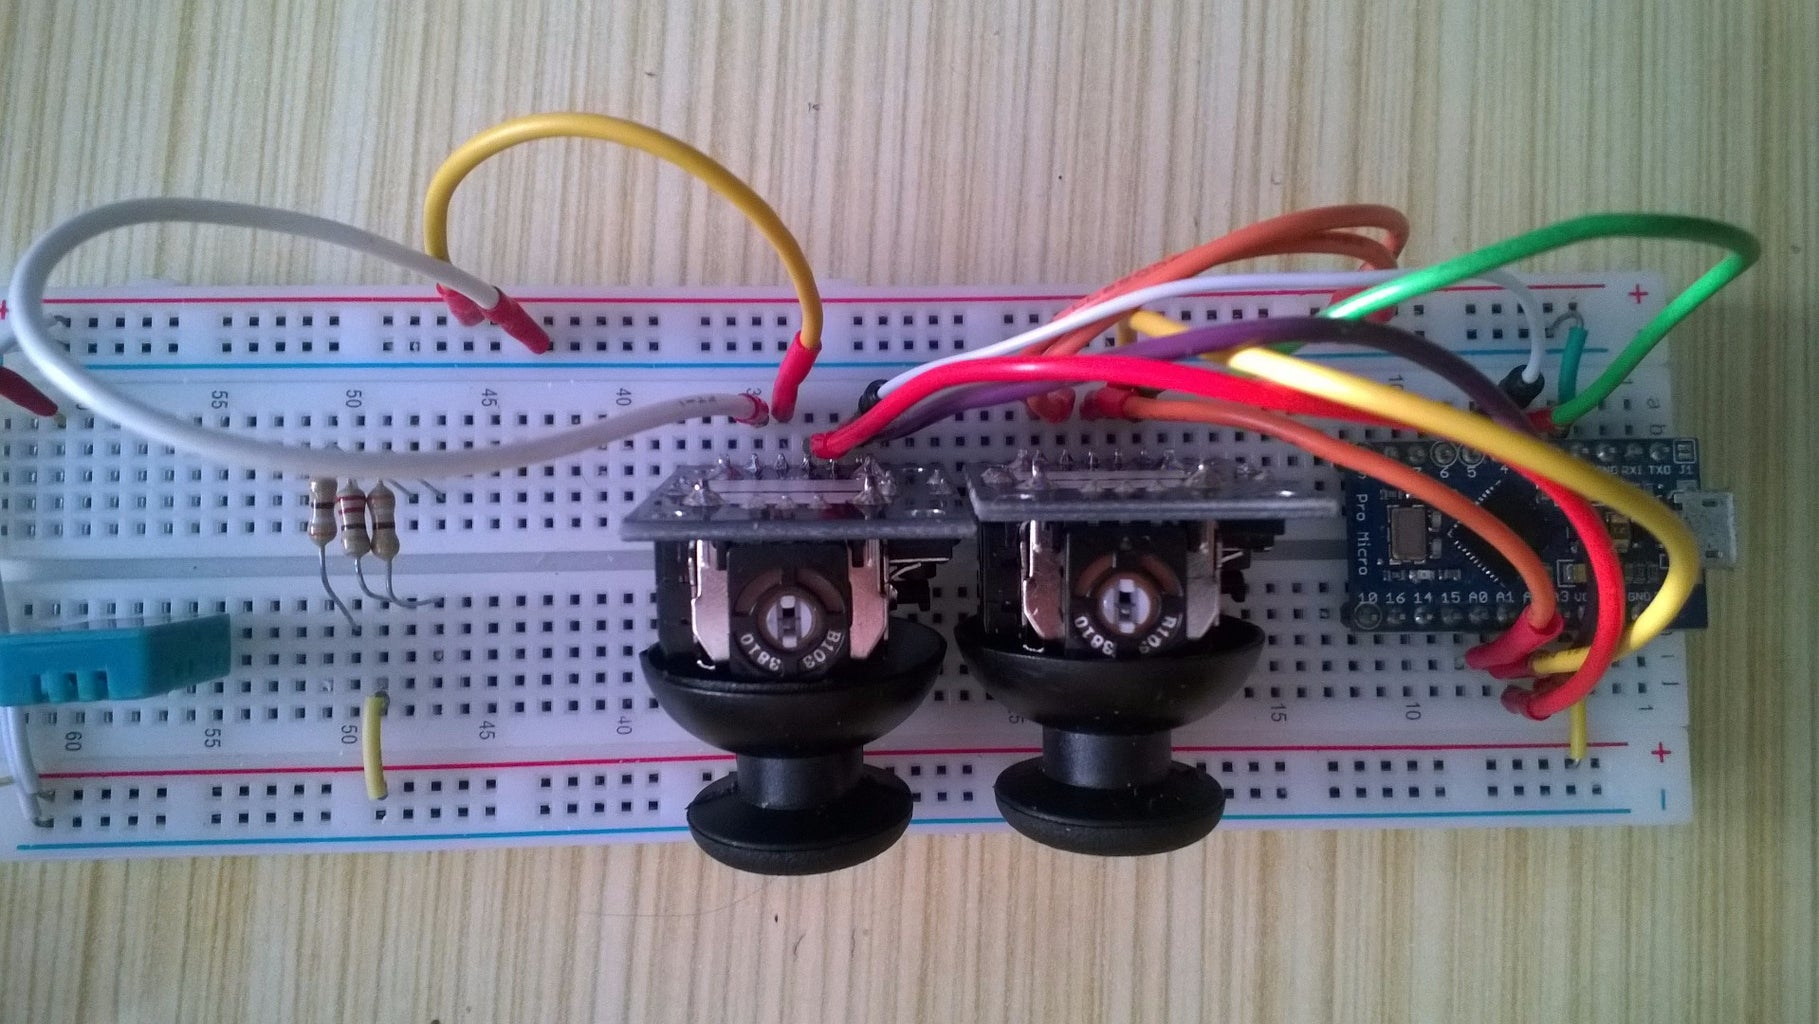 Connecting Thumbaxises and Buttons to Arduino